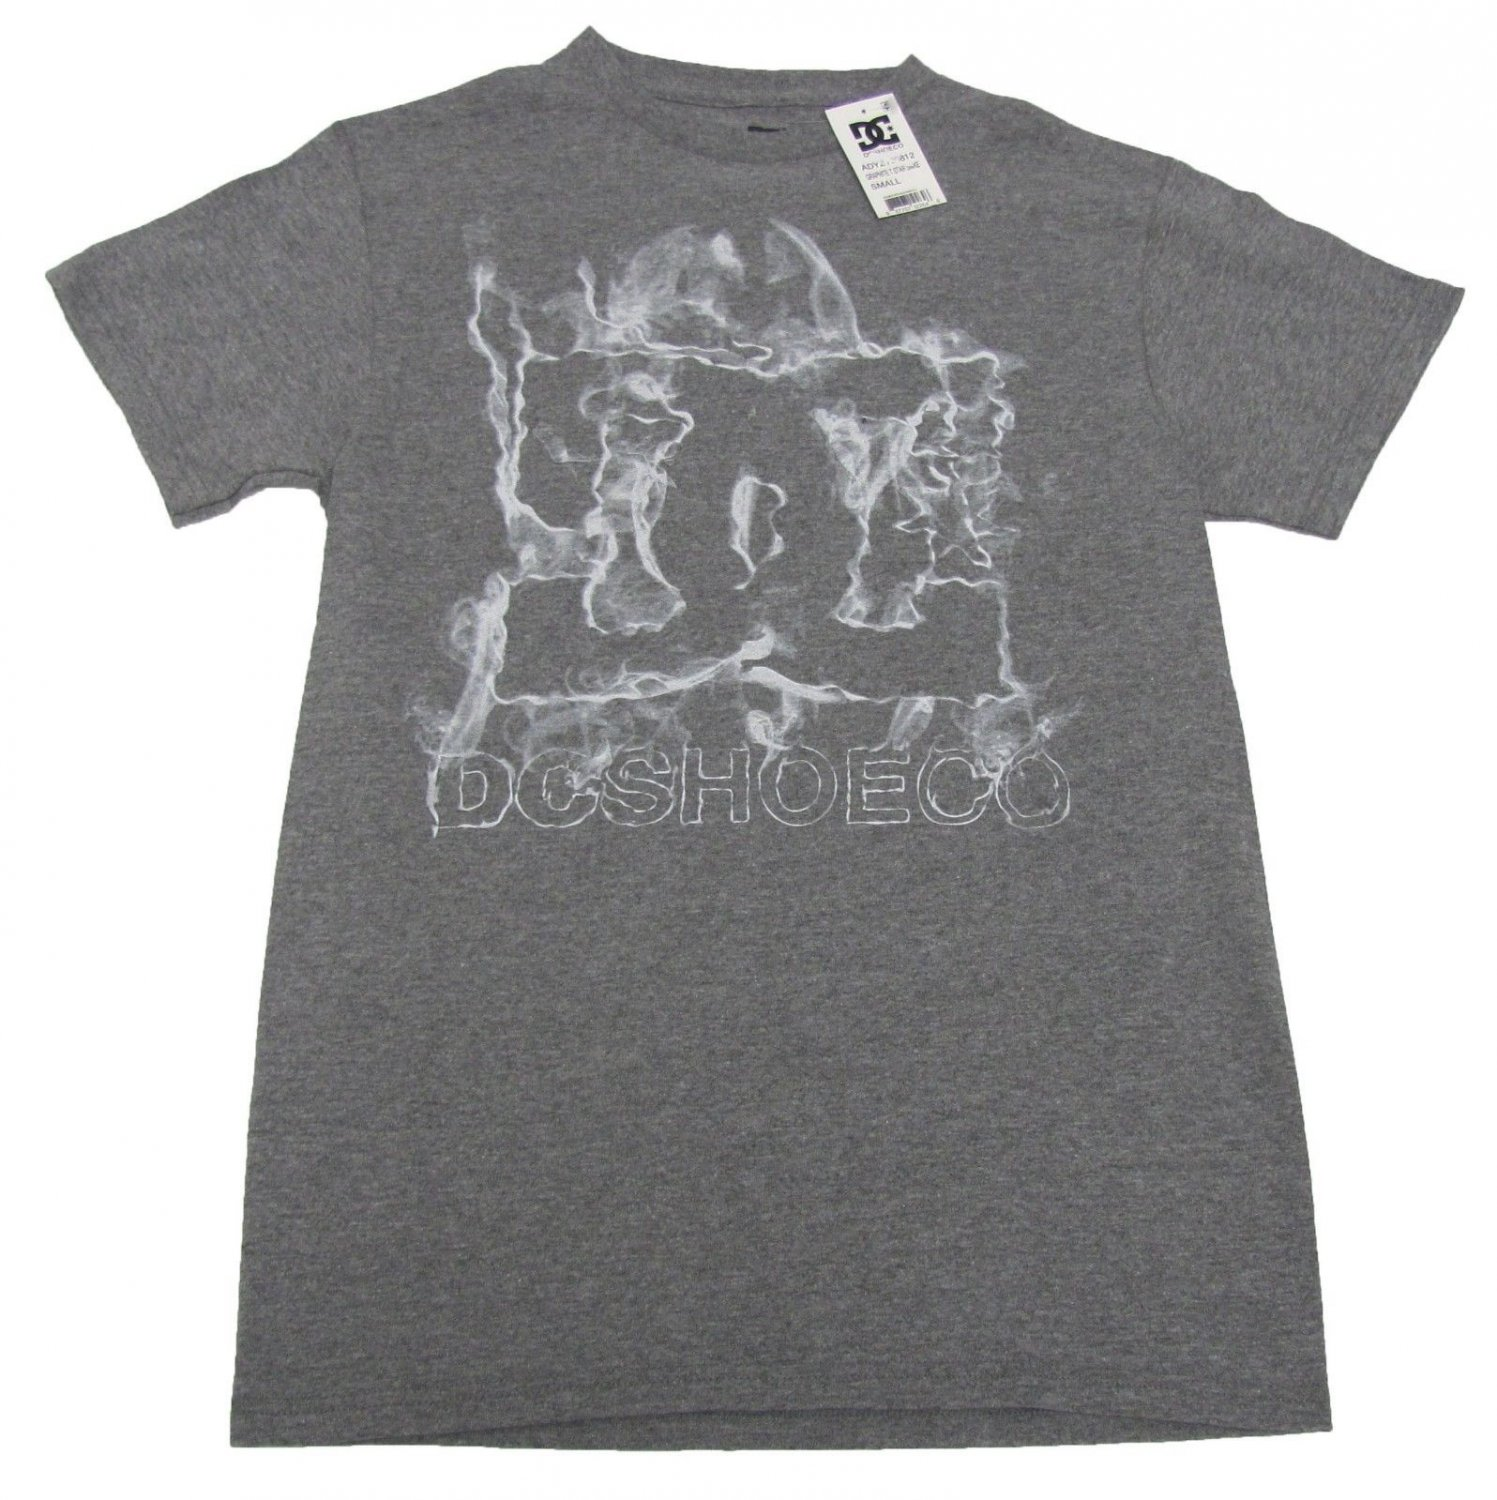 DC Shoes Mens S Star Smoke Tee Shirt Graphite Heather Gray Small